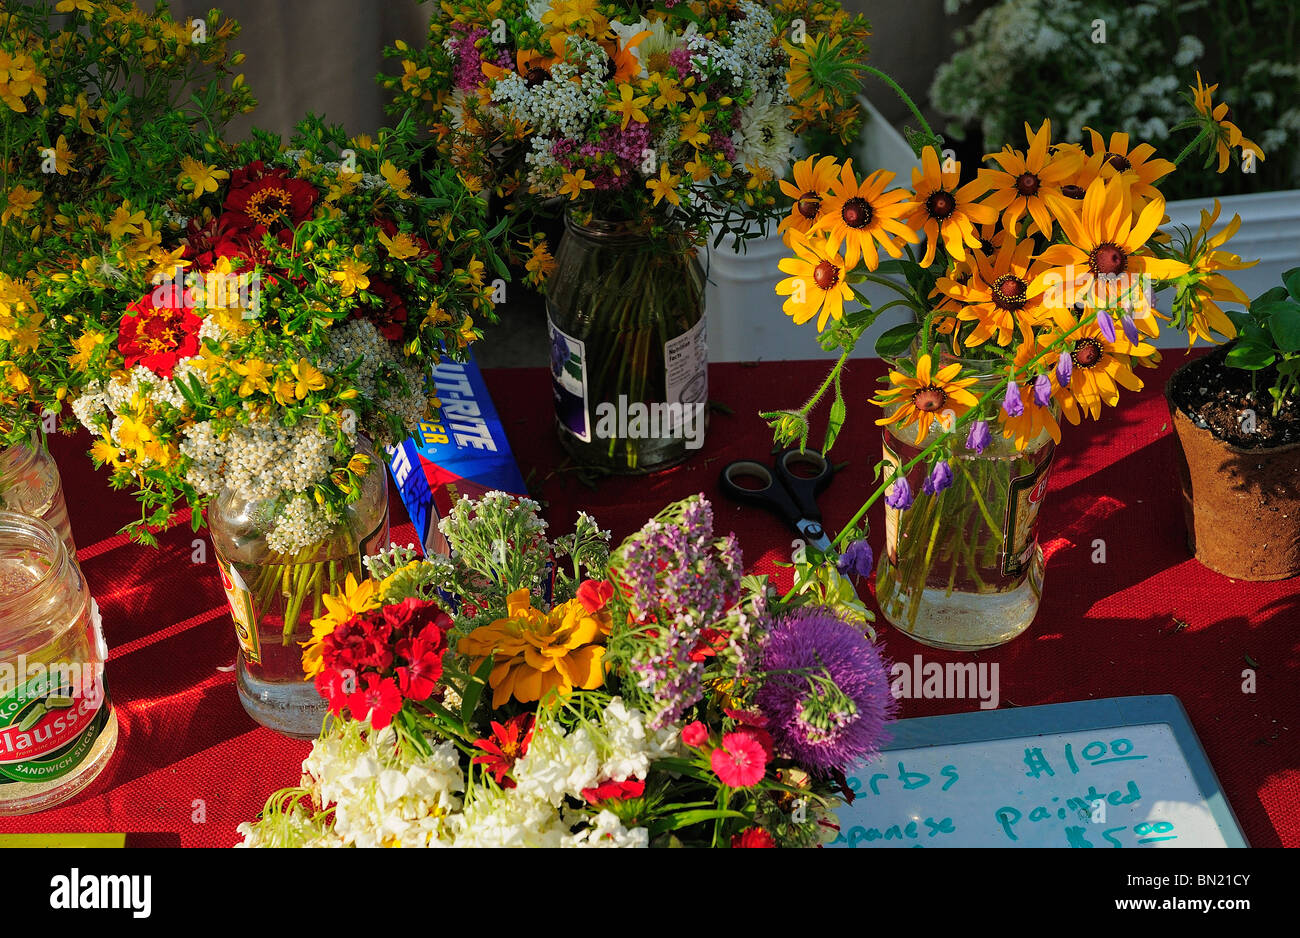 Many Flowers Bouquets Stock Photos & Many Flowers Bouquets Stock ...